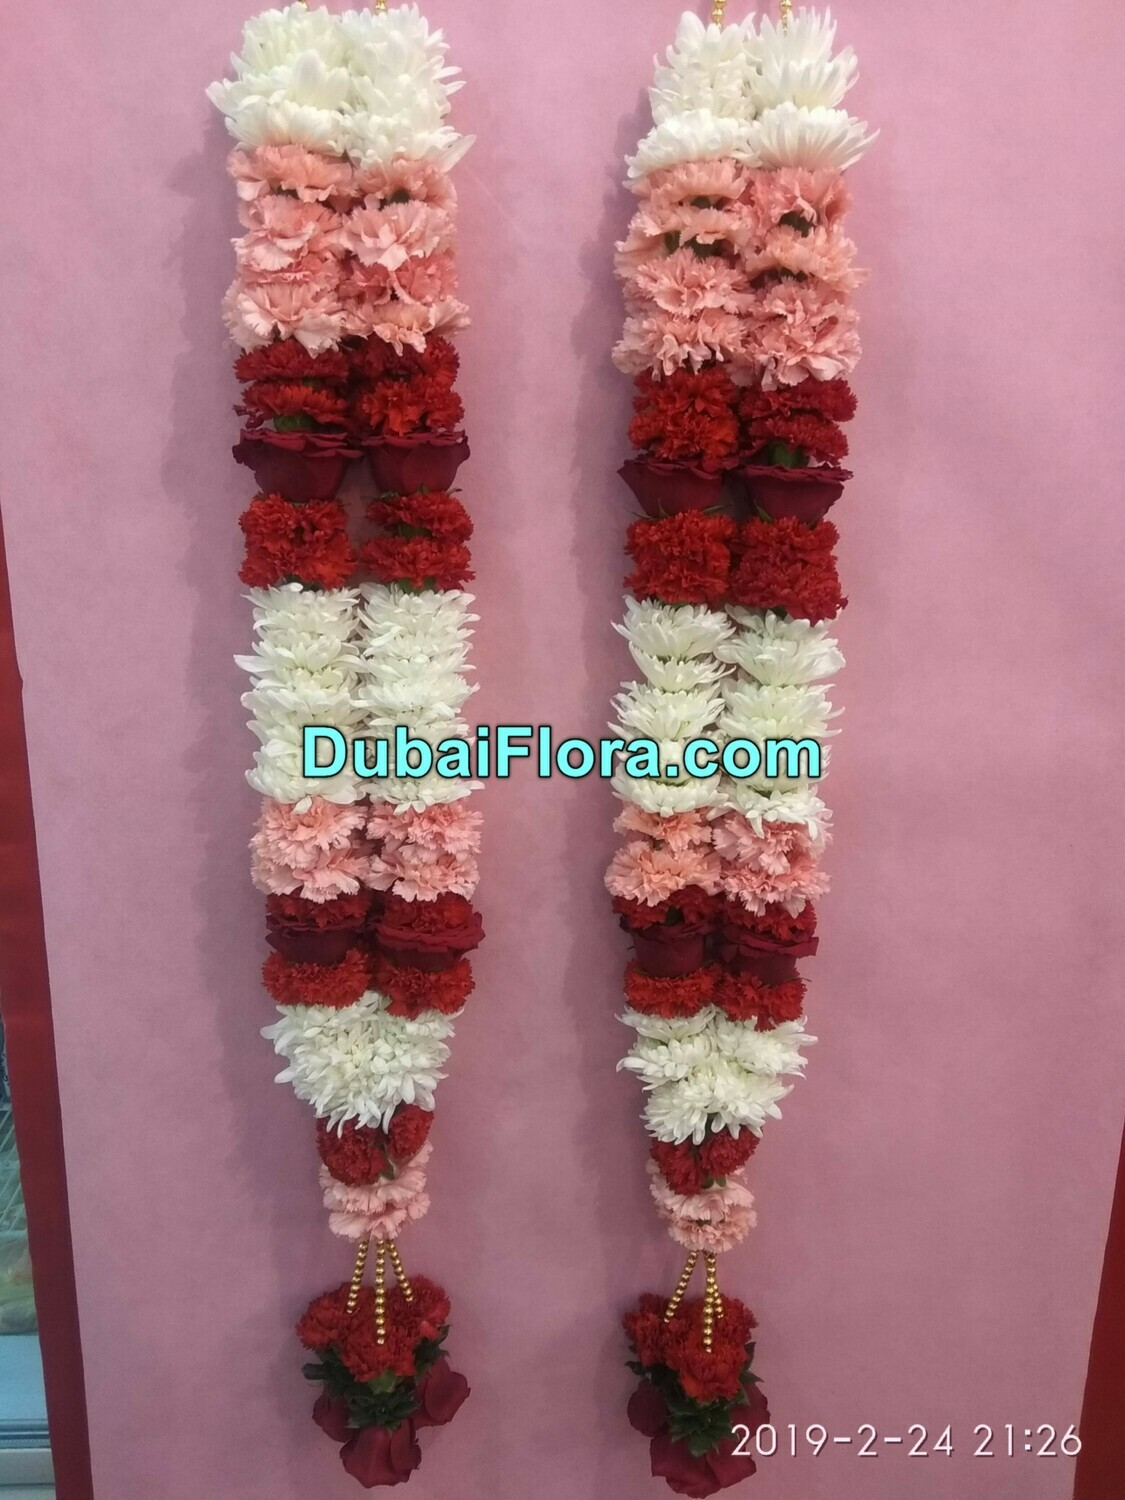 2 Chrysanthemum and Carnation Garland with Roses